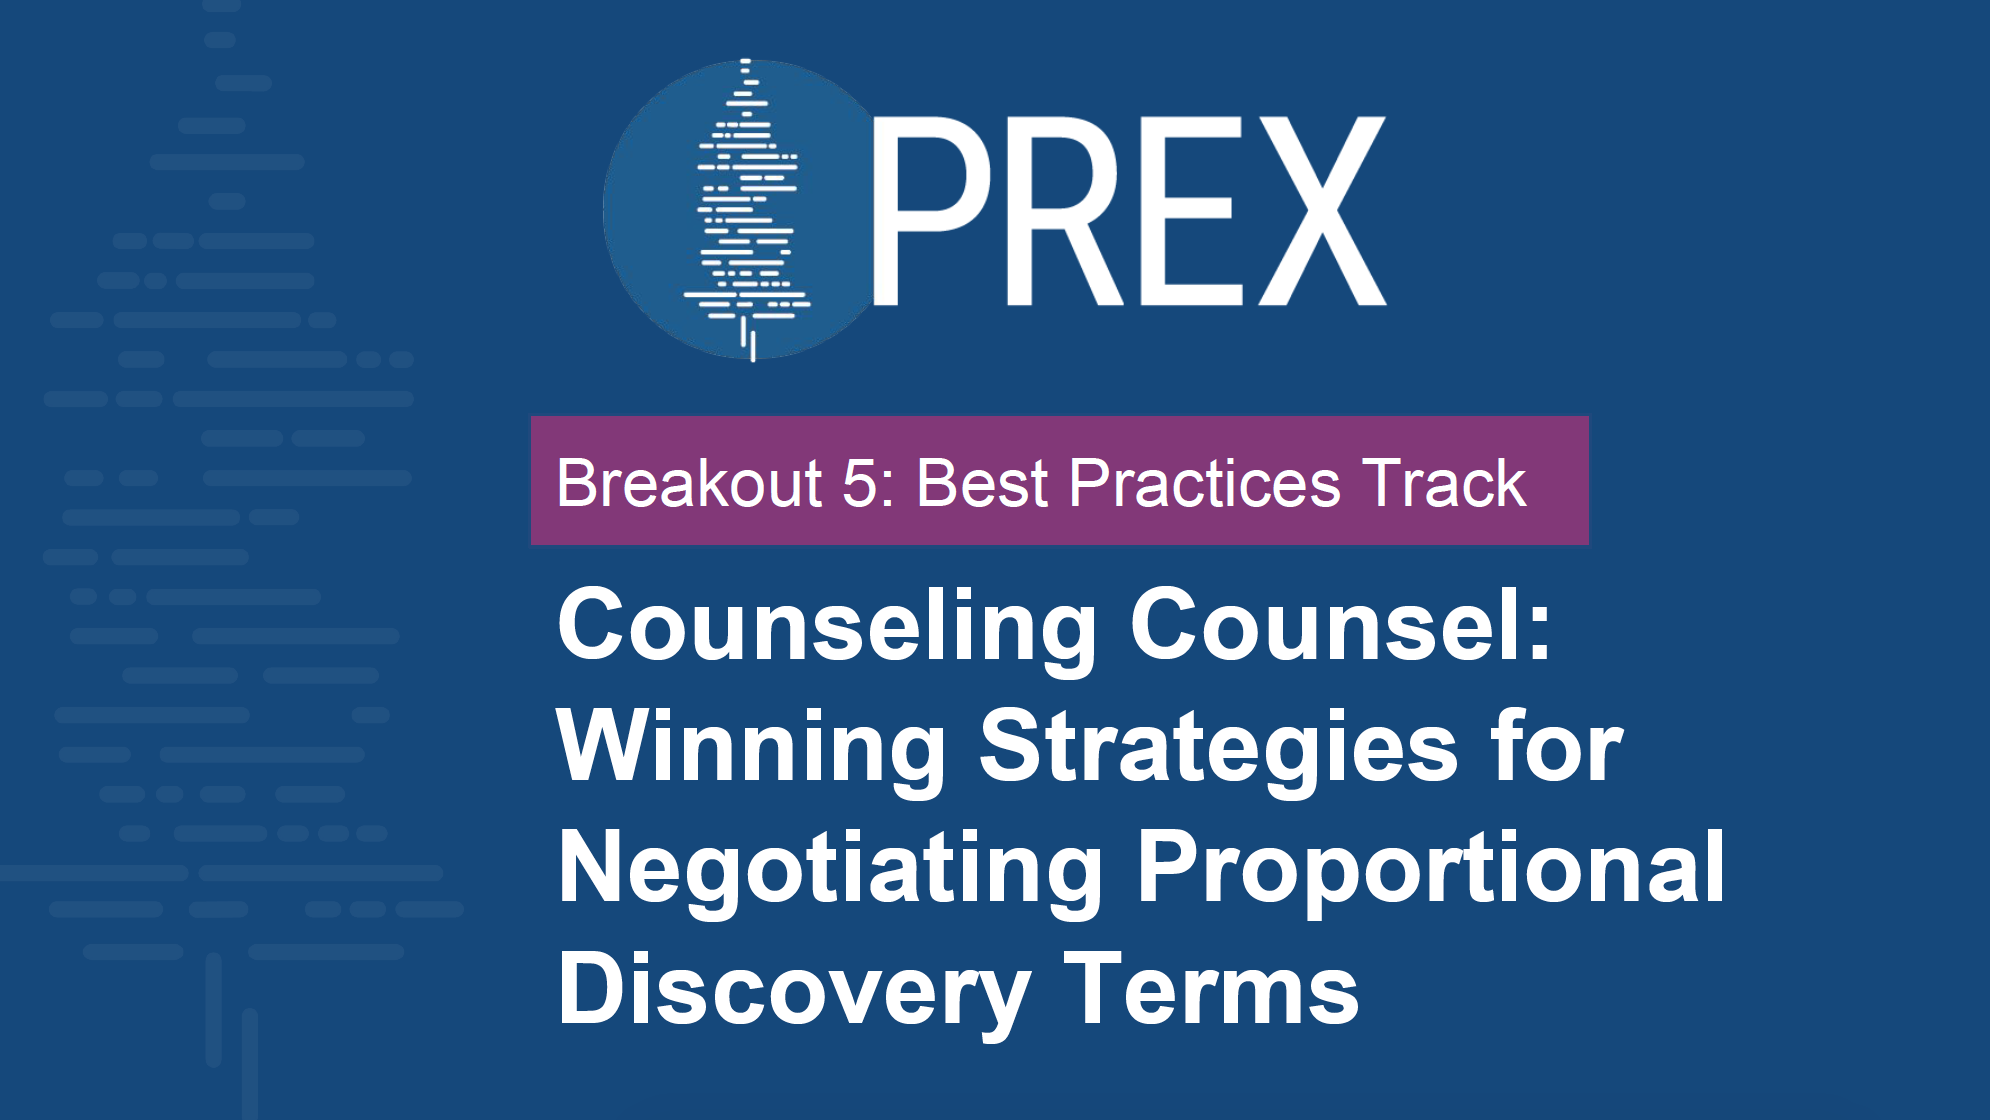 (Breakout 1 - Team Process) The Art of Negotiation Determining What's Reasonable